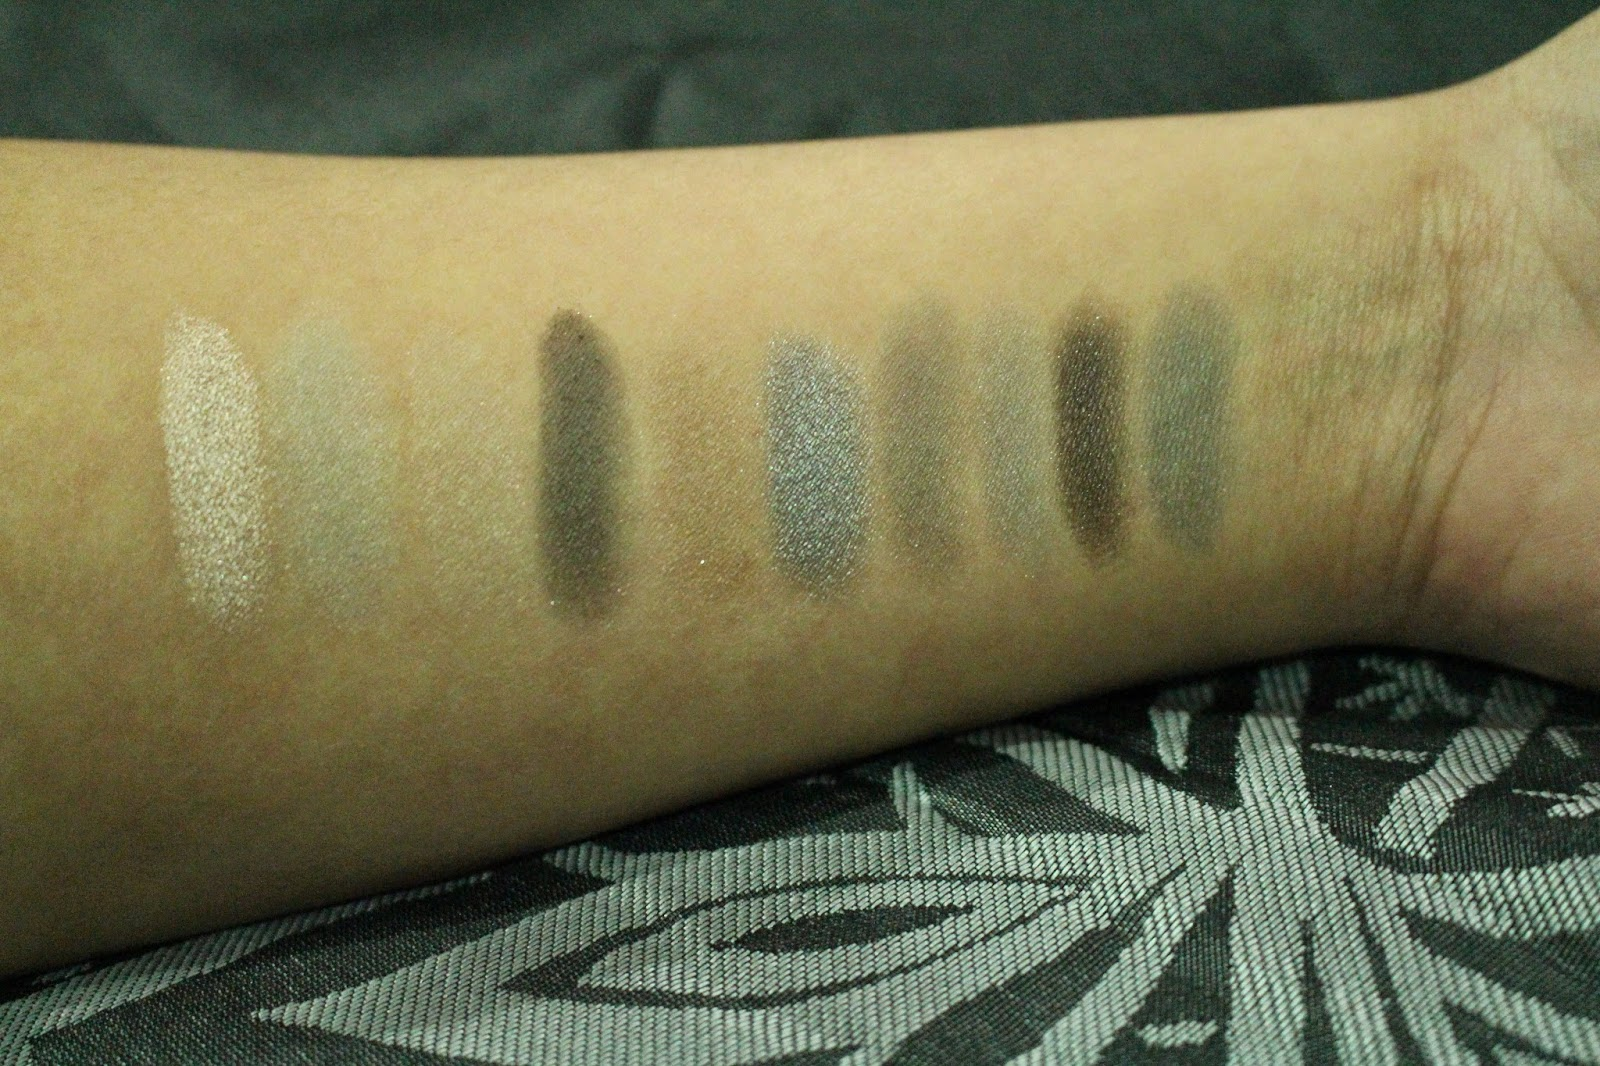 Beauty Essentials 10 Shade Smoky Eye Shadow Palette Swatches